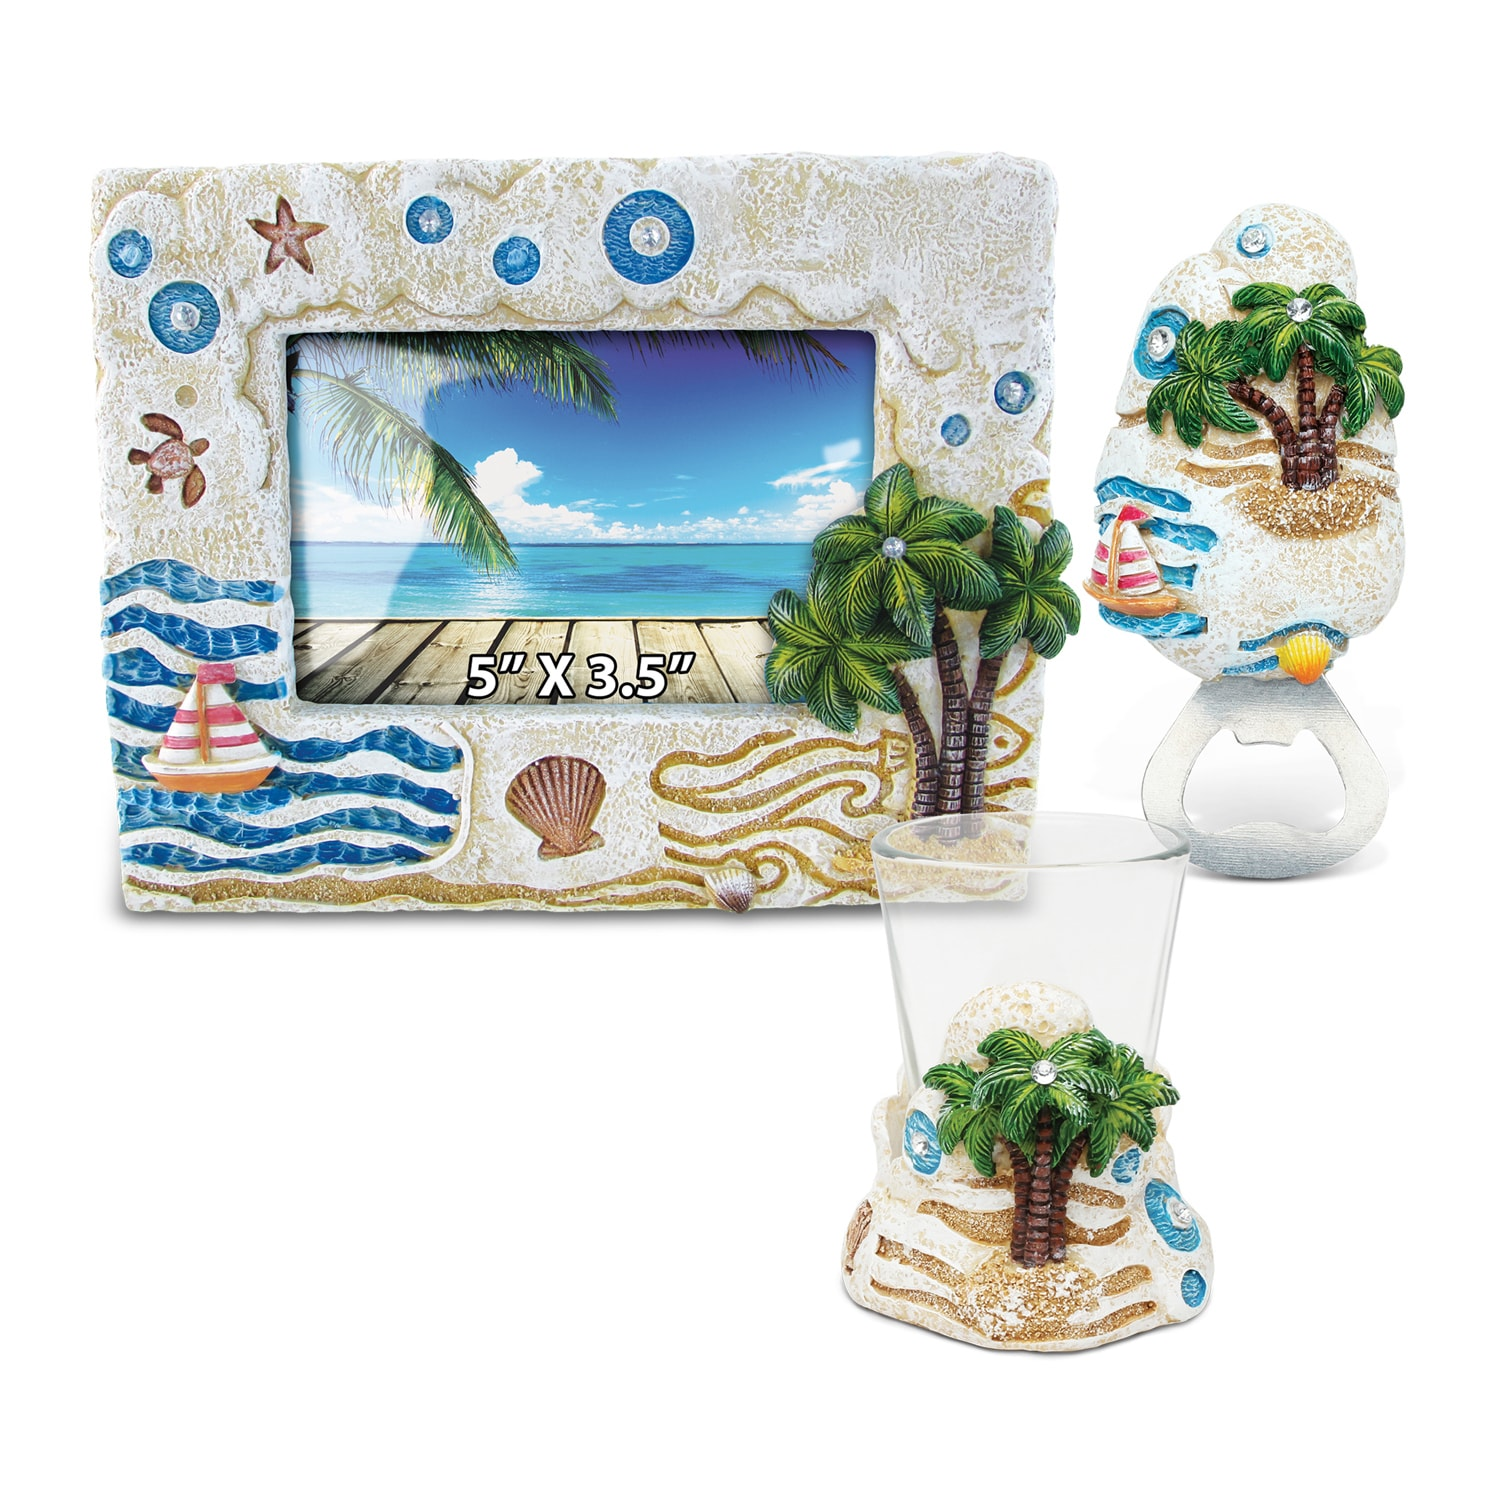 Puzzled Home Decor Value Pack Palm Tree Resin Stone colle...